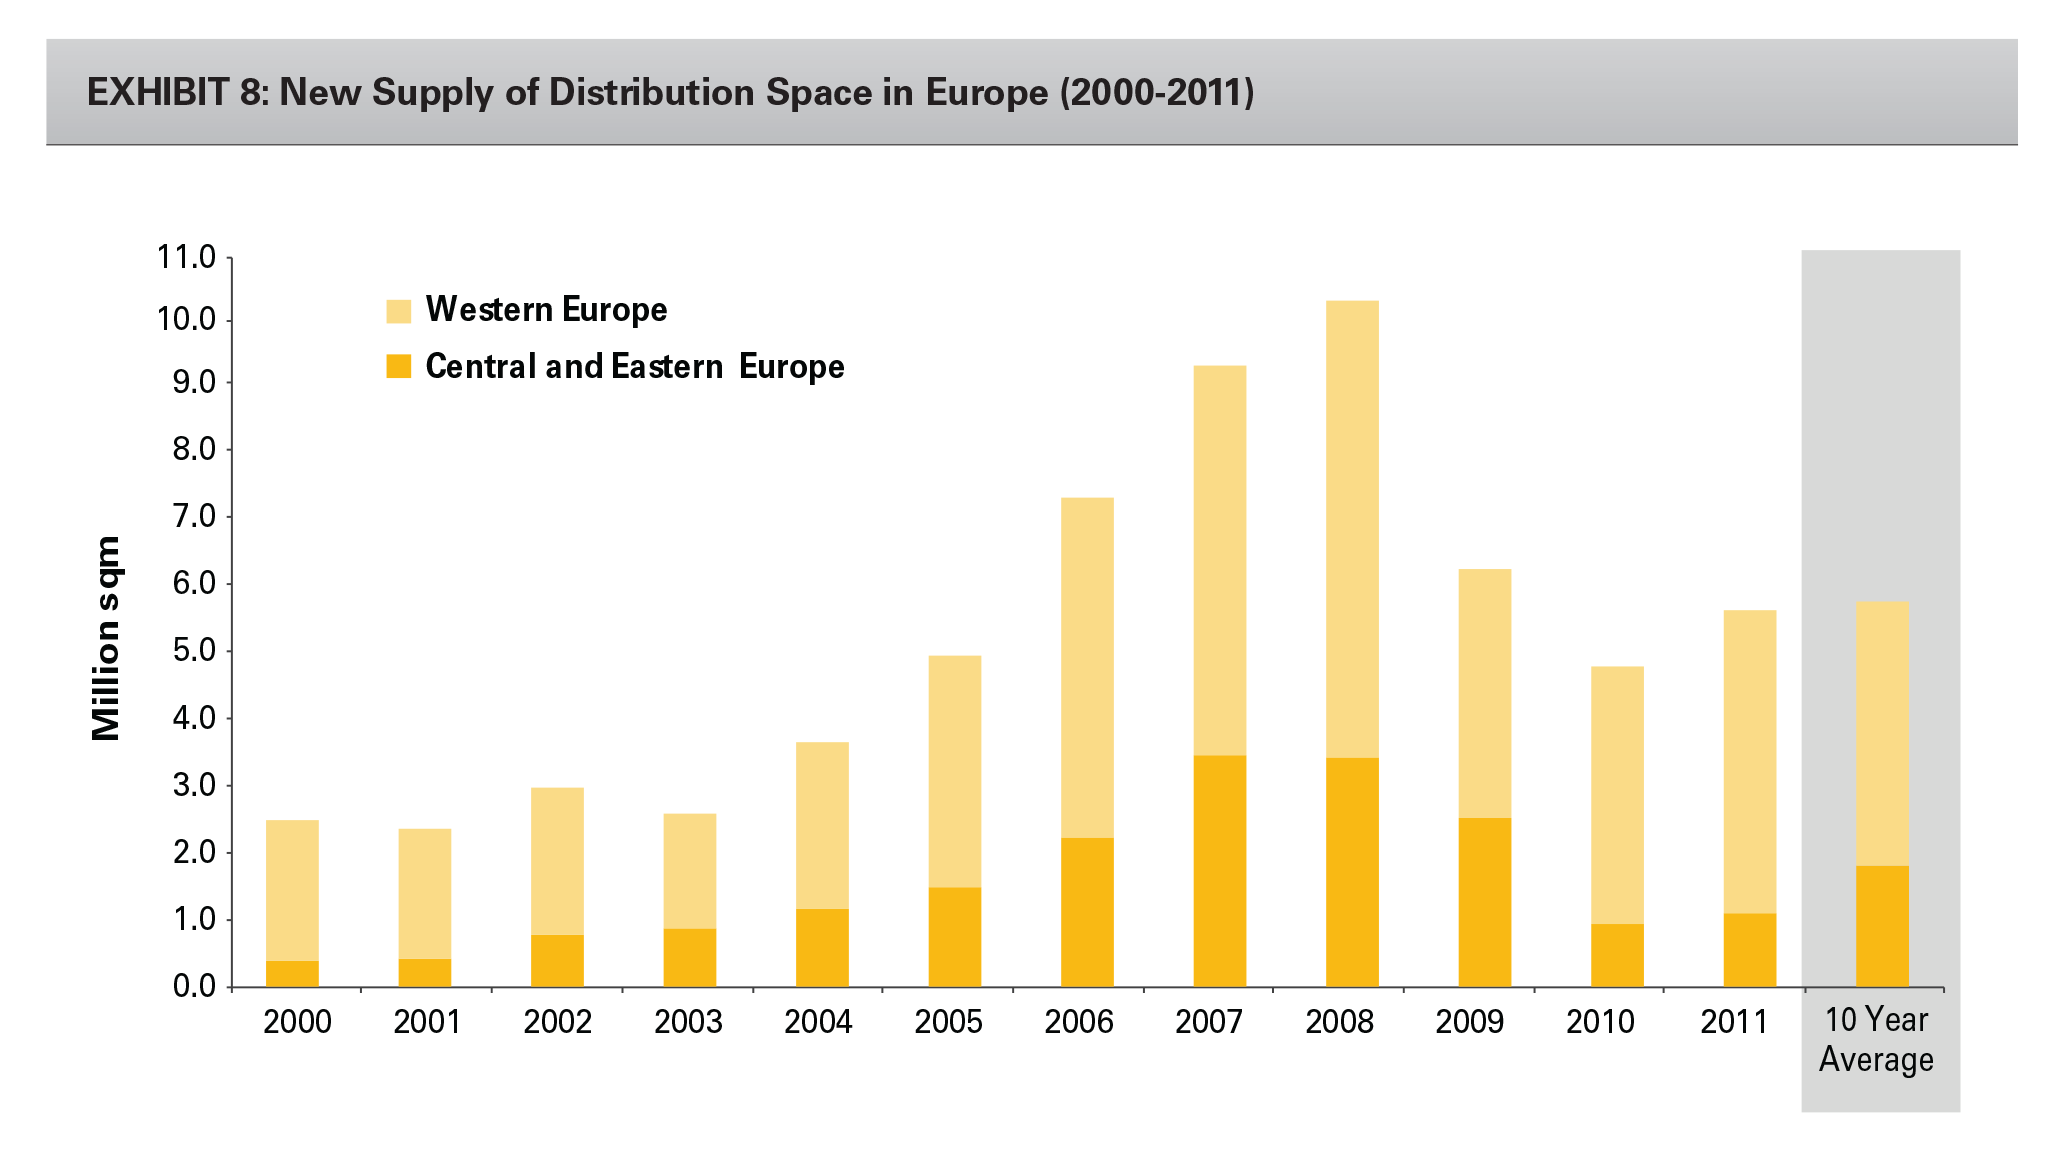 EXHIBIT 8: New Supply of Distribution Space in Europe (2000-2011)